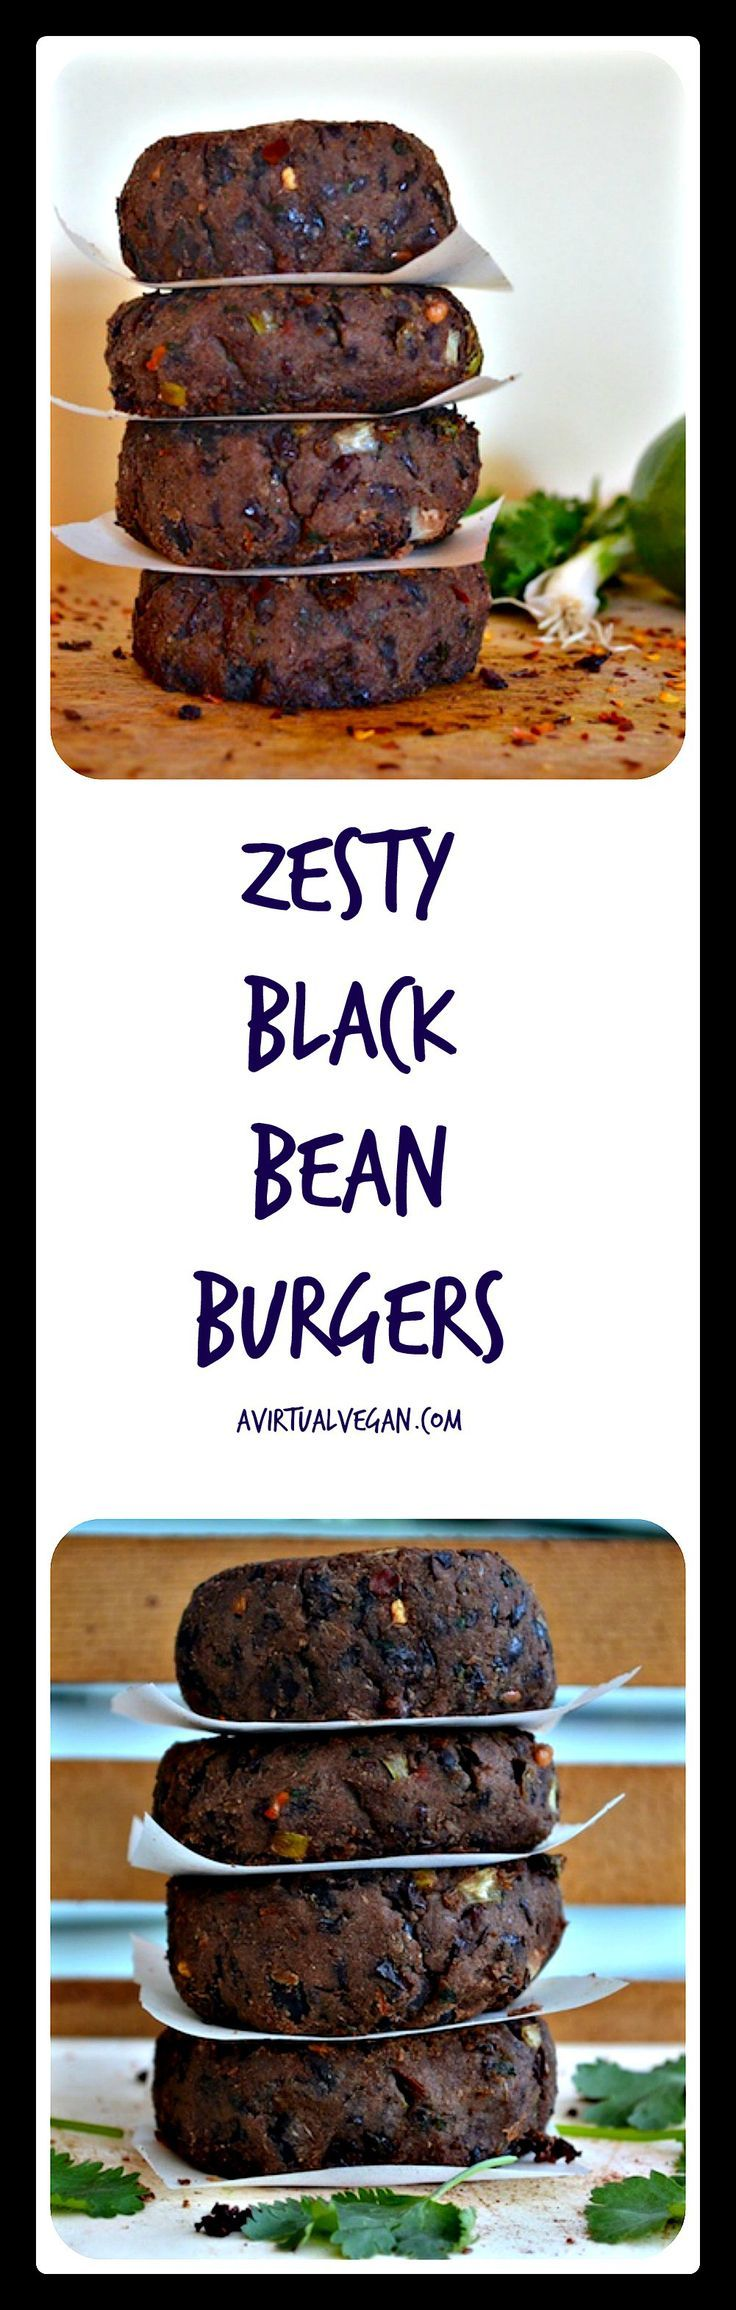 These vegan, zesty black bean burgers will satisfy even the most ardent meat eater! Full of citrusy flavour with a slight chilli kick and perfectly moist. (scheduled via http://www.tailwindapp.com?utm_source=pinterest&utm_medium=twpin&utm_content=post5766420&utm_campaign=scheduler_attribution)